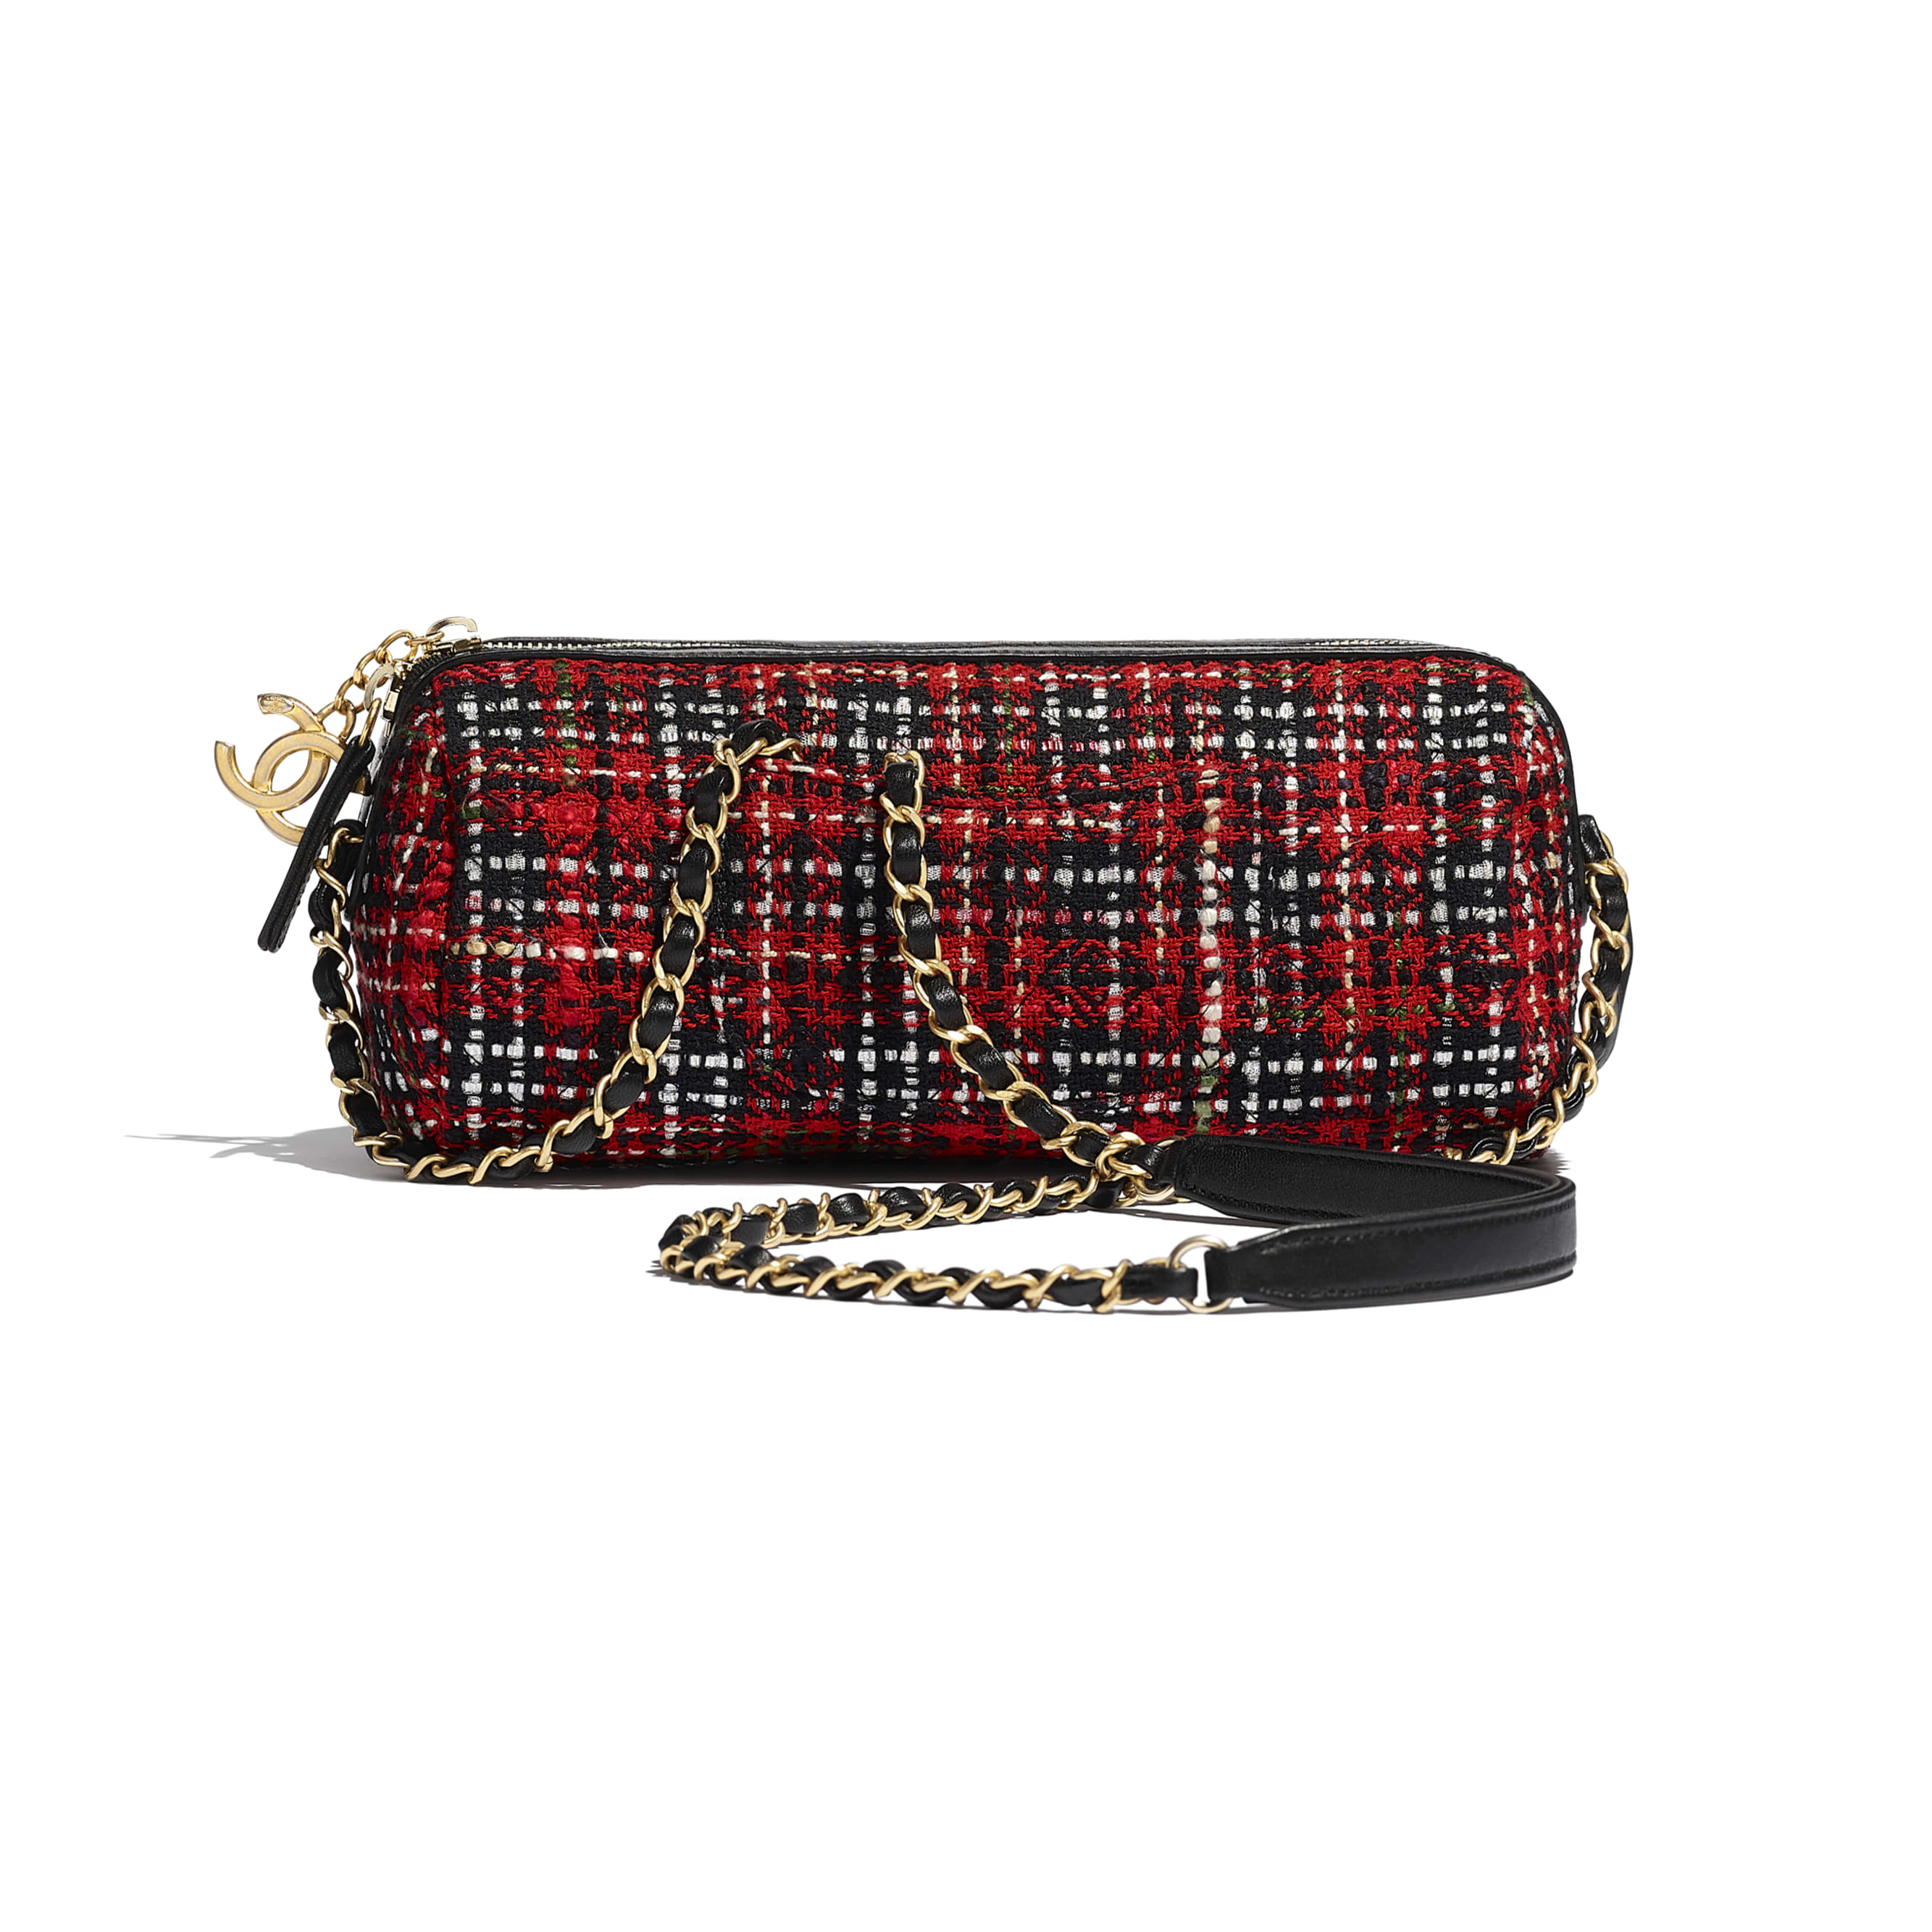 Bowling Bag - Red, Black, White & Green - Tweed, Calfskin & Gold-Tone Metal - CHANEL - Alternative view - see standard sized version